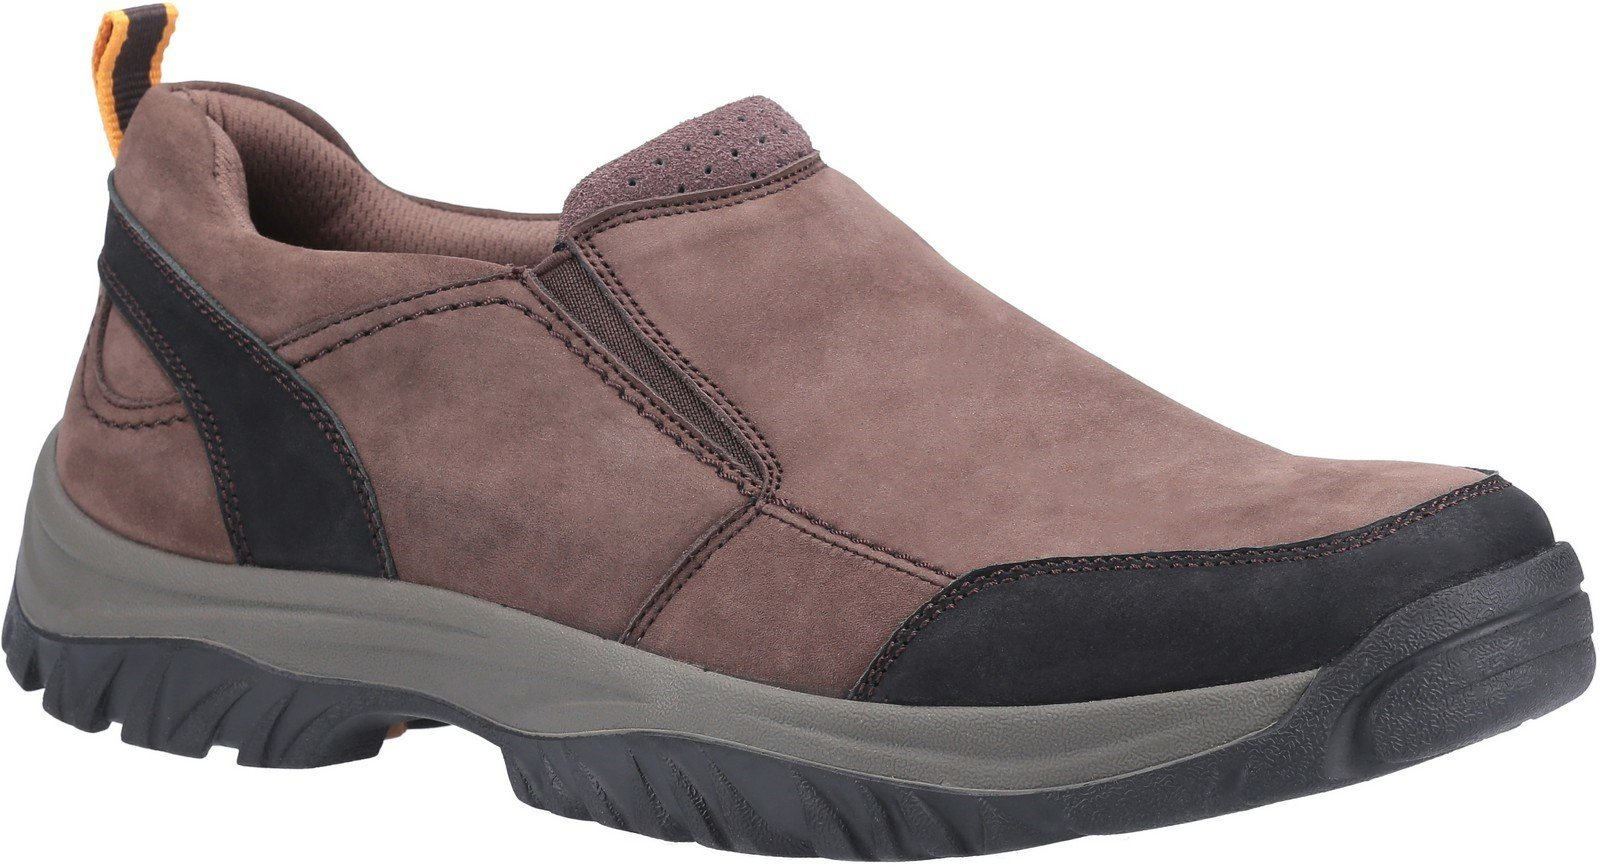 Cotswold Men's Boxwell Slip On Hiking Shoe Various Colours 30149 - Brown 7